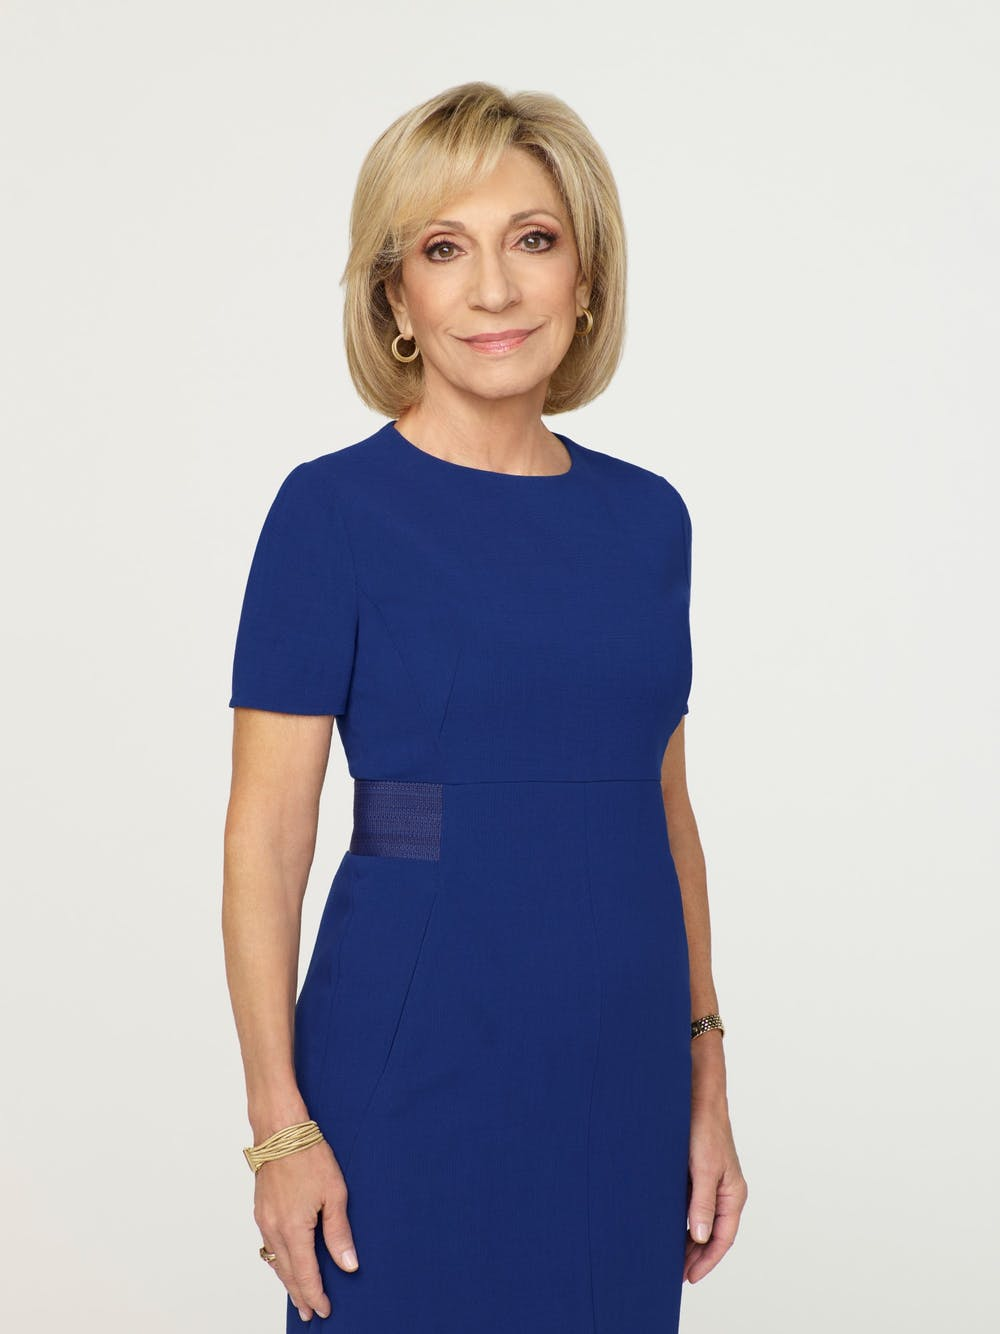 Andrea Mitchell announced as commencement speaker for virtual December ceremony